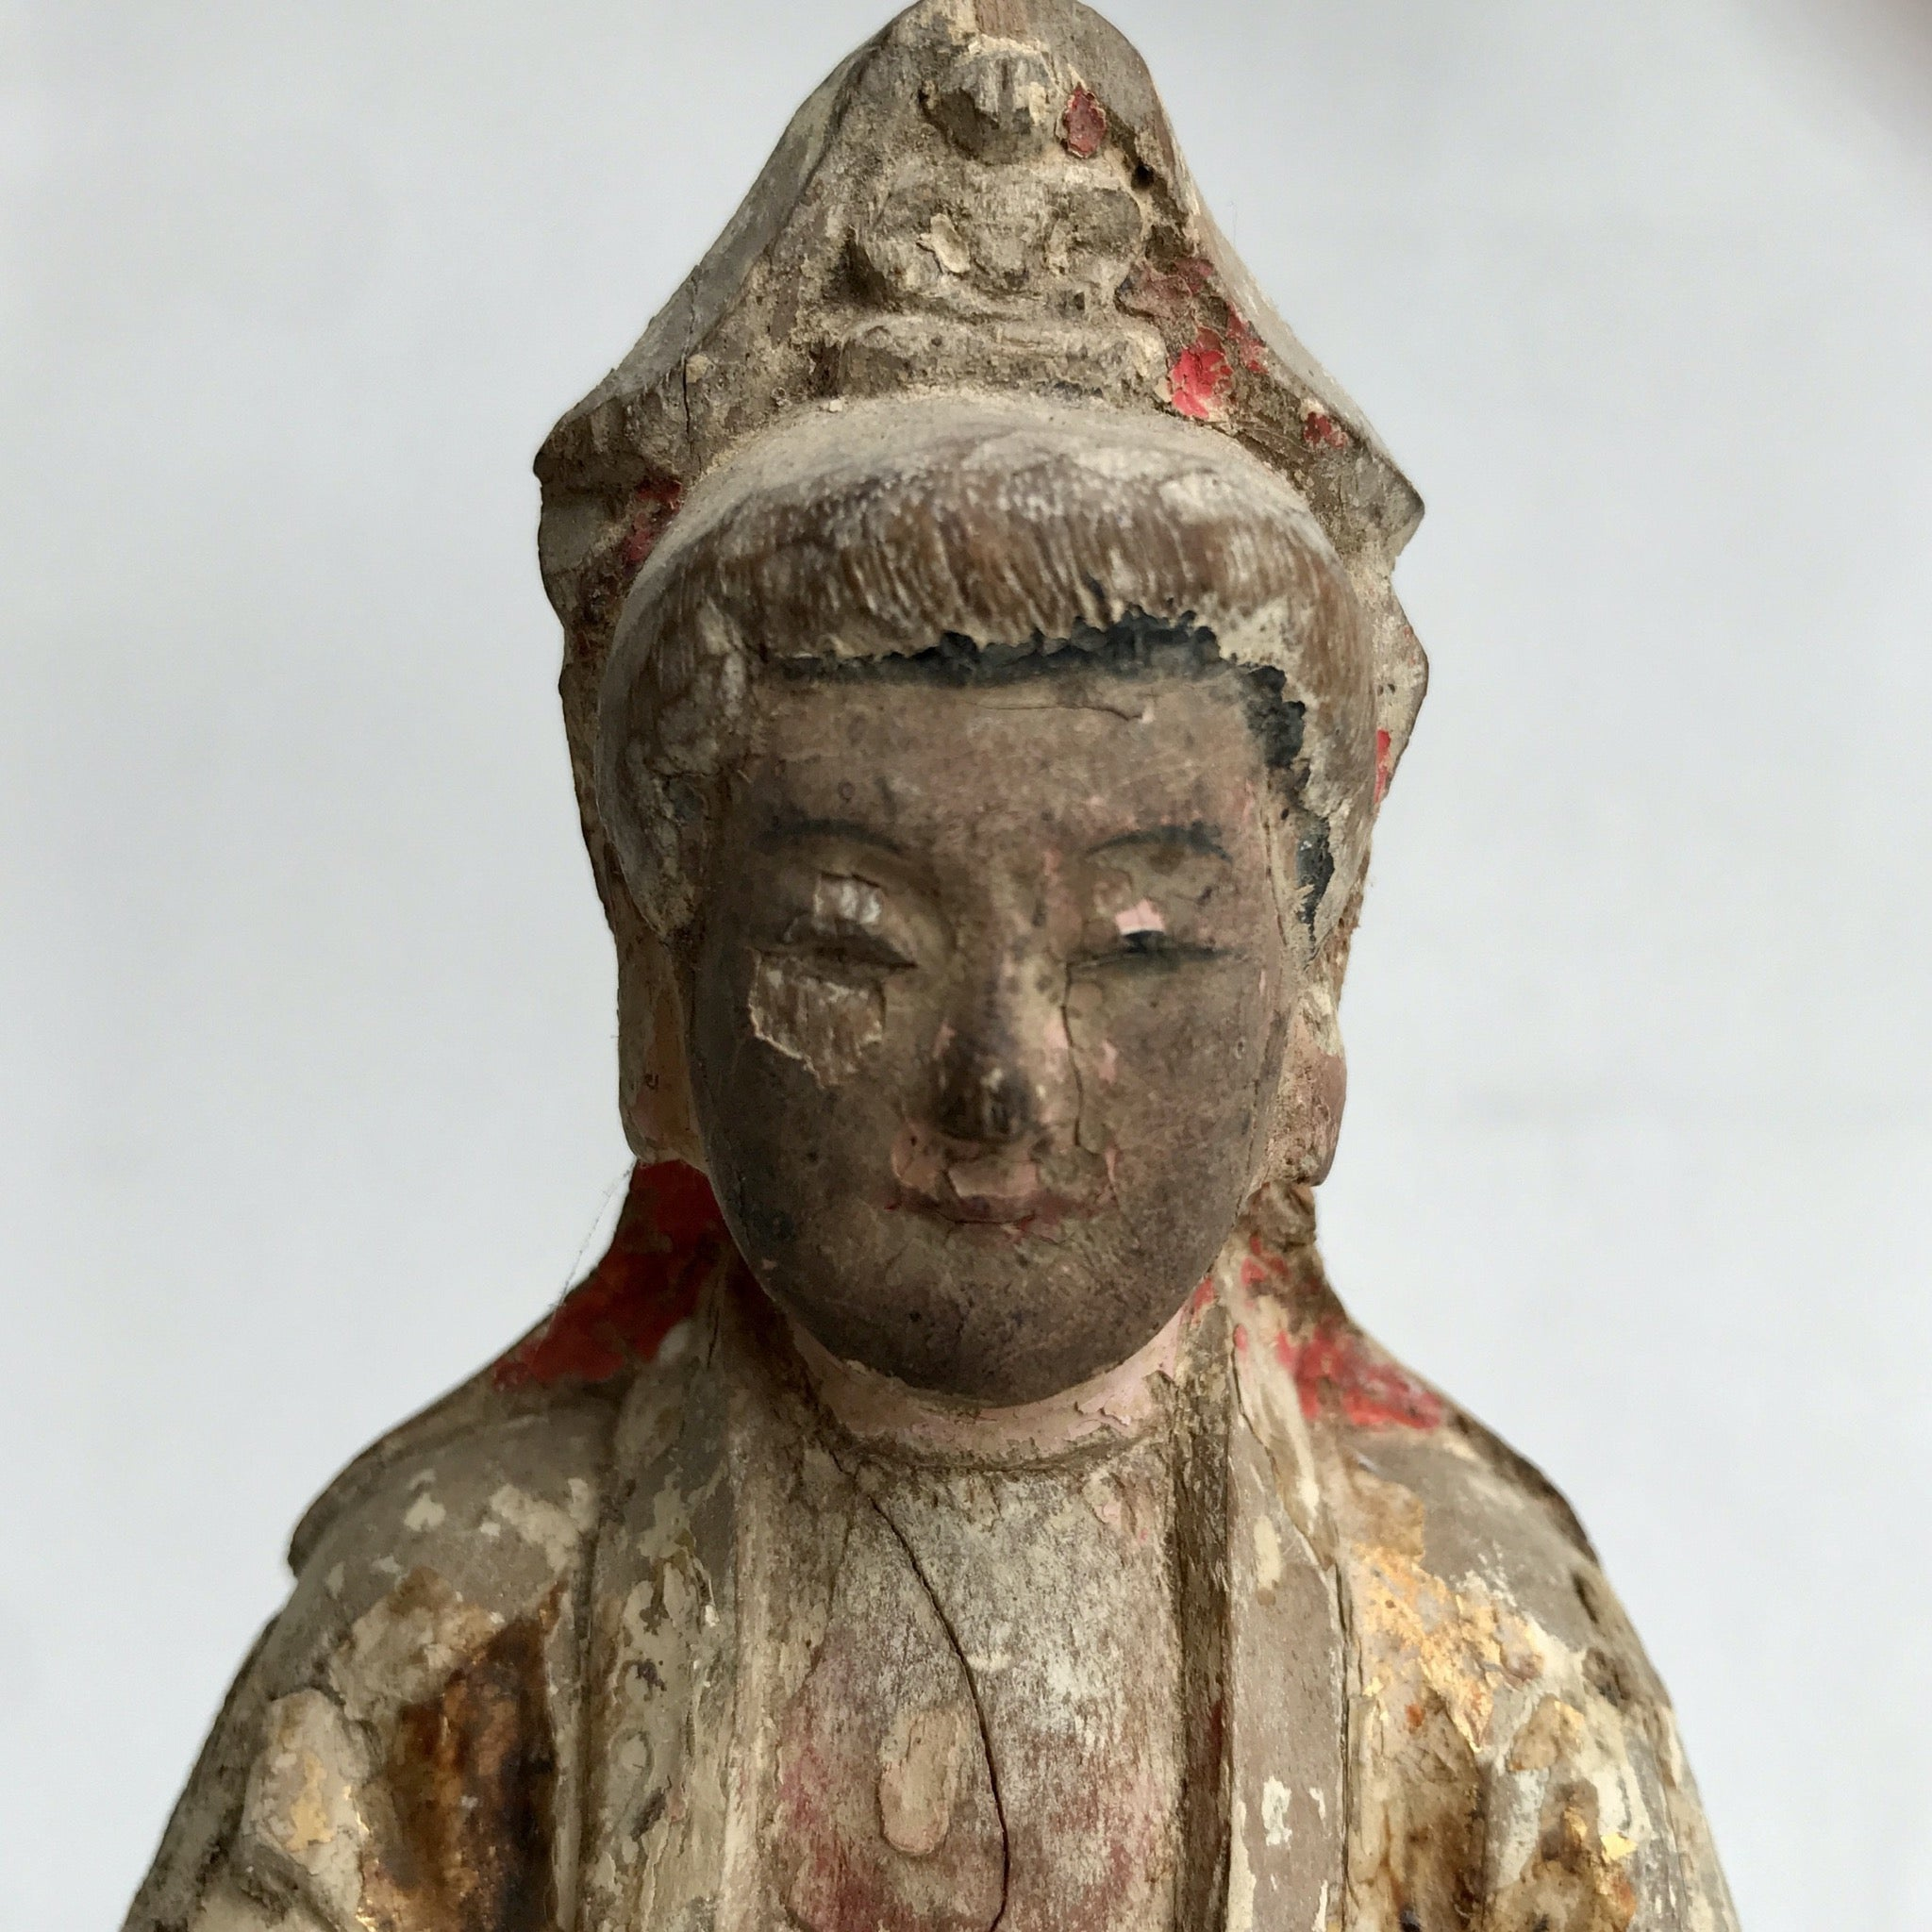 Close up of face of Quan Yin. Buddha in her headdress and flecks of red and gold paint remaining. She has a quiet expression.